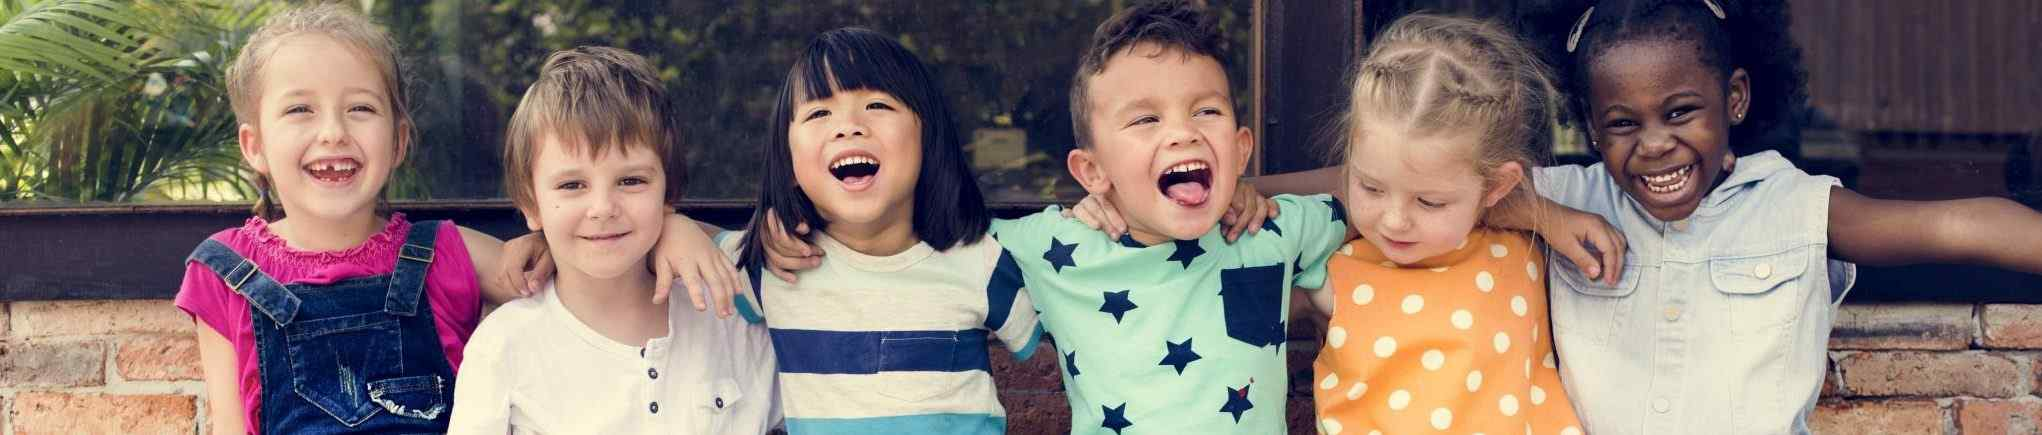 Image of children laughing in a row; courtesy of Shutterstock.